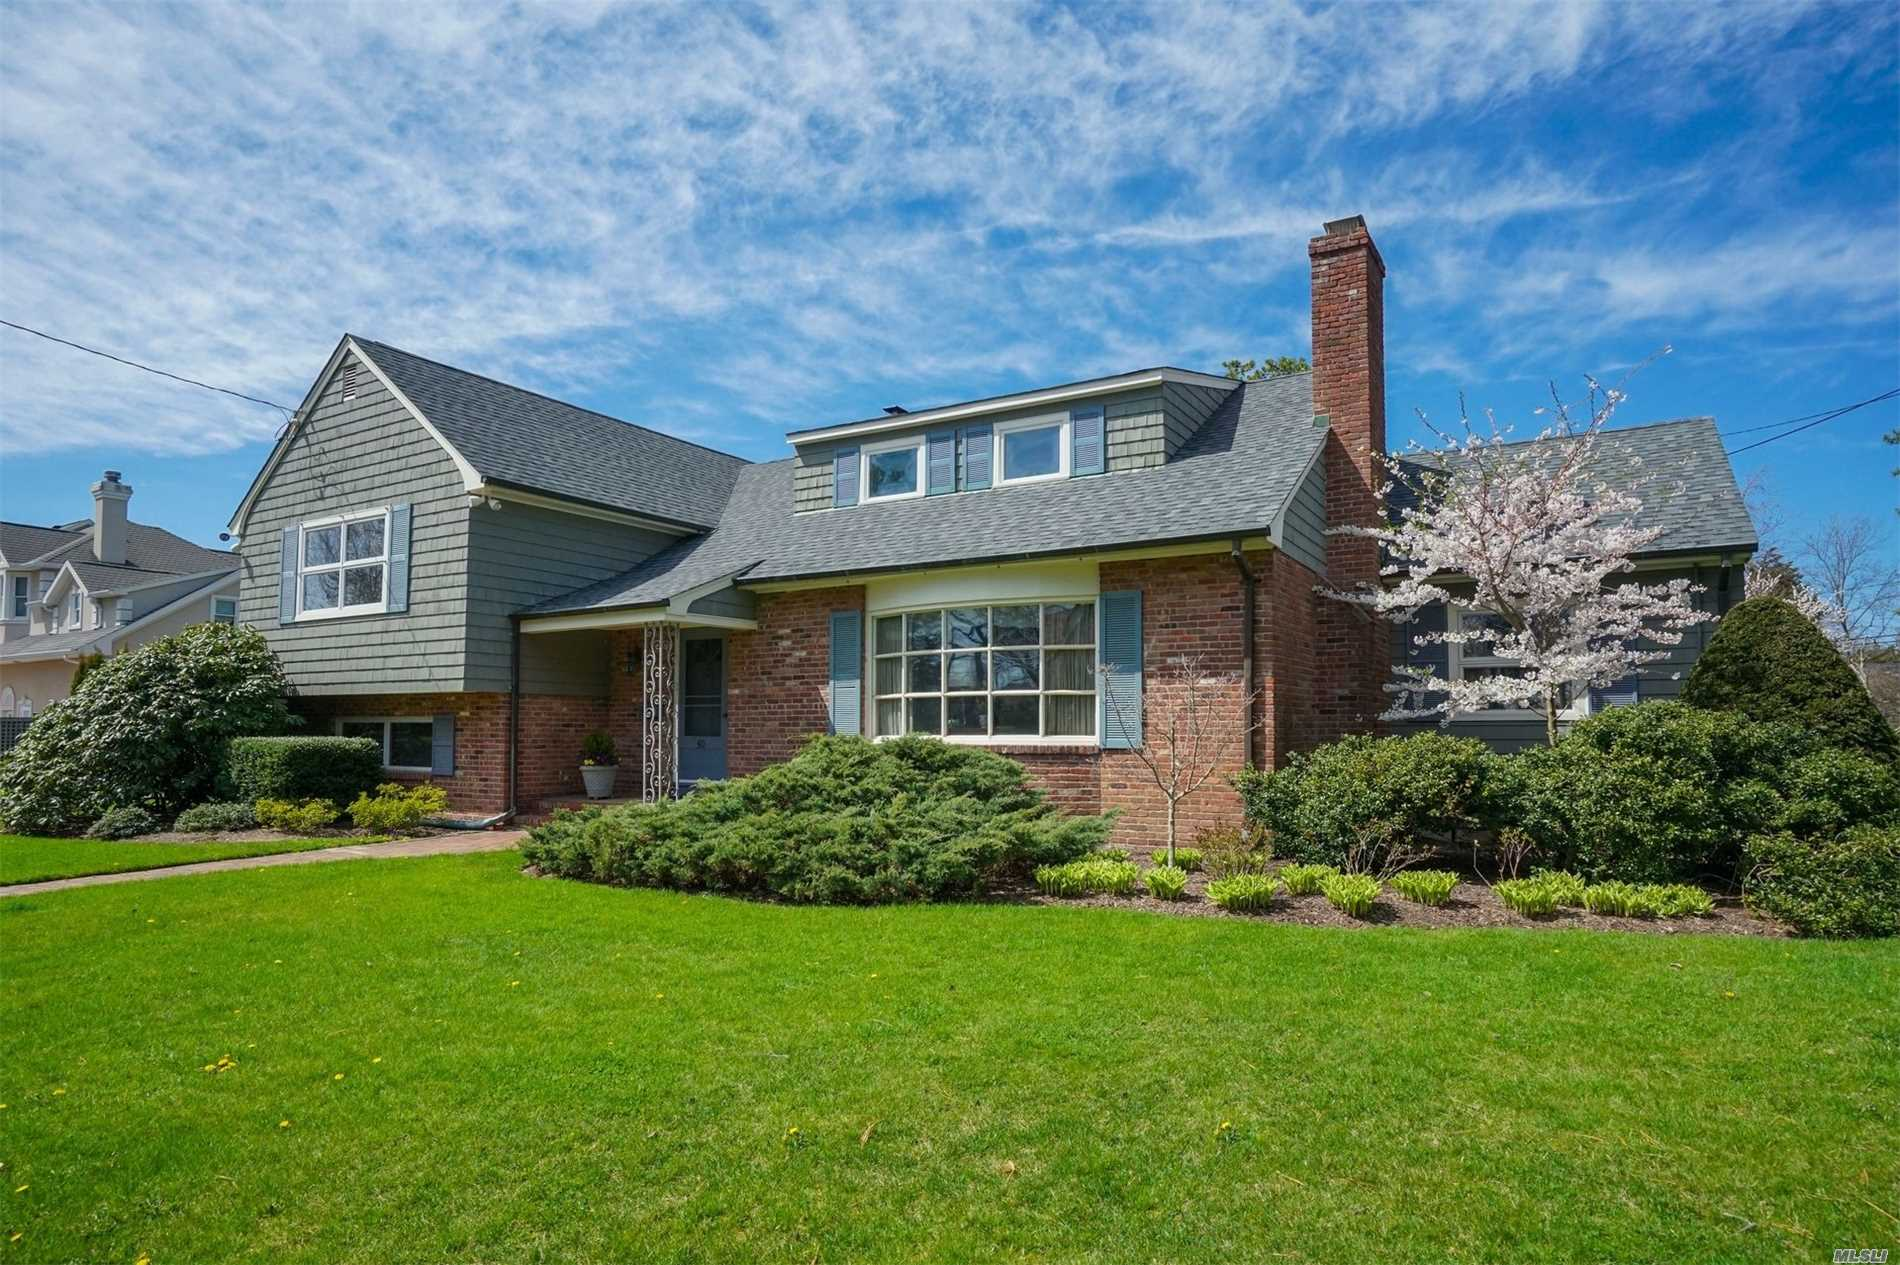 Islip, Bayberry Point, S.O.M, Entry Foyer, Formal Lr Wbfp, Formal Dr, Eik, Office, Tv Room With 1/2 Bath, Fla Room, 2nd Floor 2 Bedrooms Jack & Jill Full Bathroom, 3rd Bedroom And 2nd Full Bath, 3rd Floor Master Suite With 3rd Full Bath. Lower Level With Family Room, Laundry Room With 1/2 Bath, 2.5 Car Attached Garage, Fenced In .8 Acre Lot,  With Outstanding Flower Gardens.Members Enjoy The Adjacent Private Beach, Private Boat Basin, Yacht Club/Youth Sailing Club, Bayberry Beach/Tennis